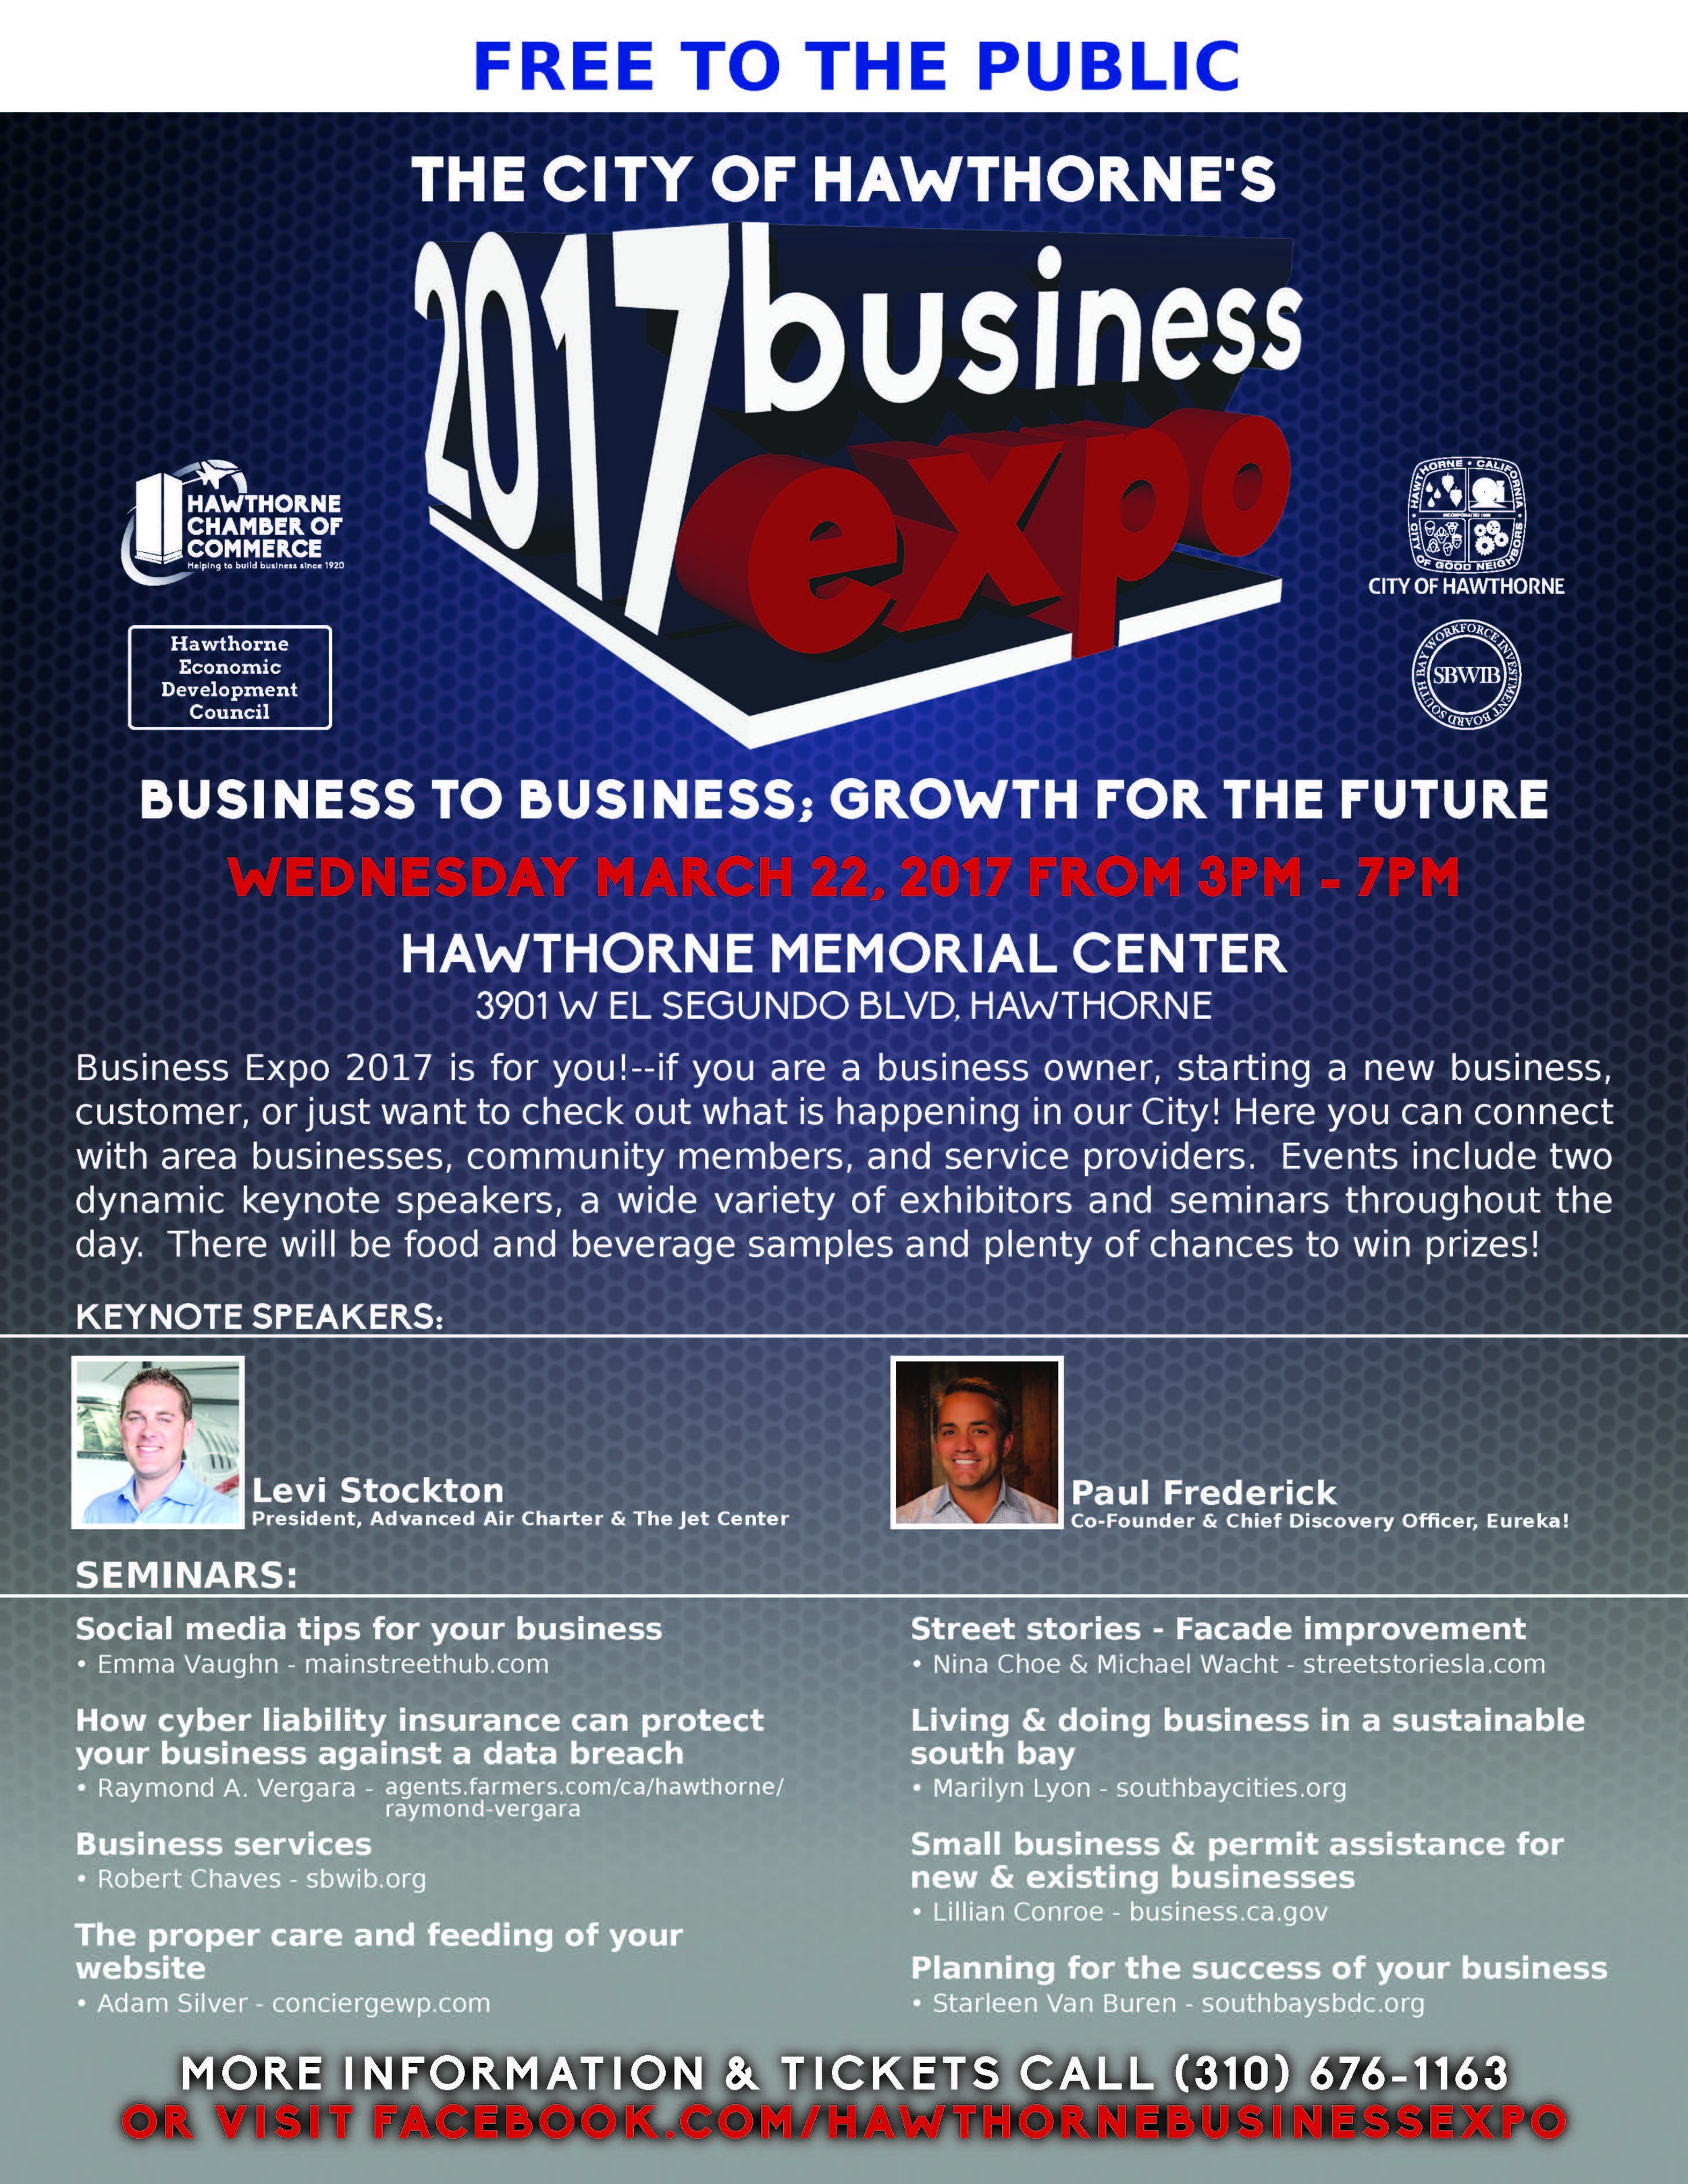 City of Hawthorne's 2017 Business Expo